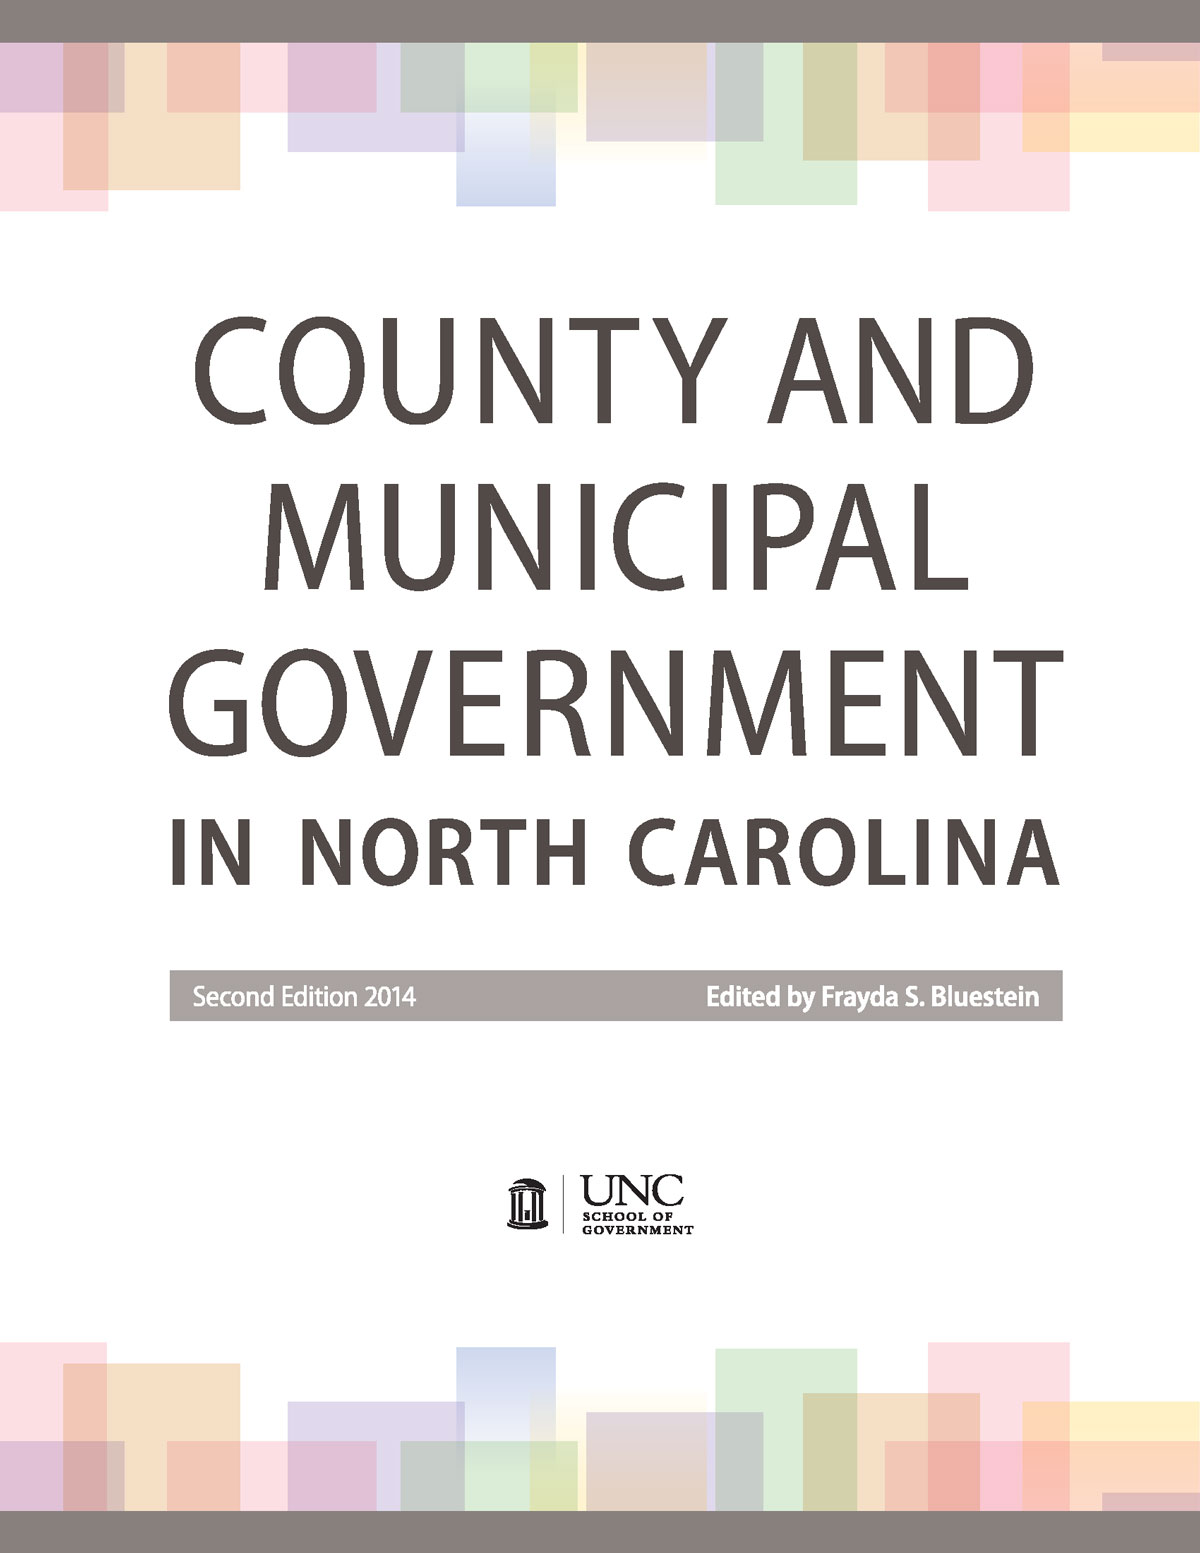 Cover image for County and Municipal Government in North Carolina, Second Edition, 2014 (E-book)